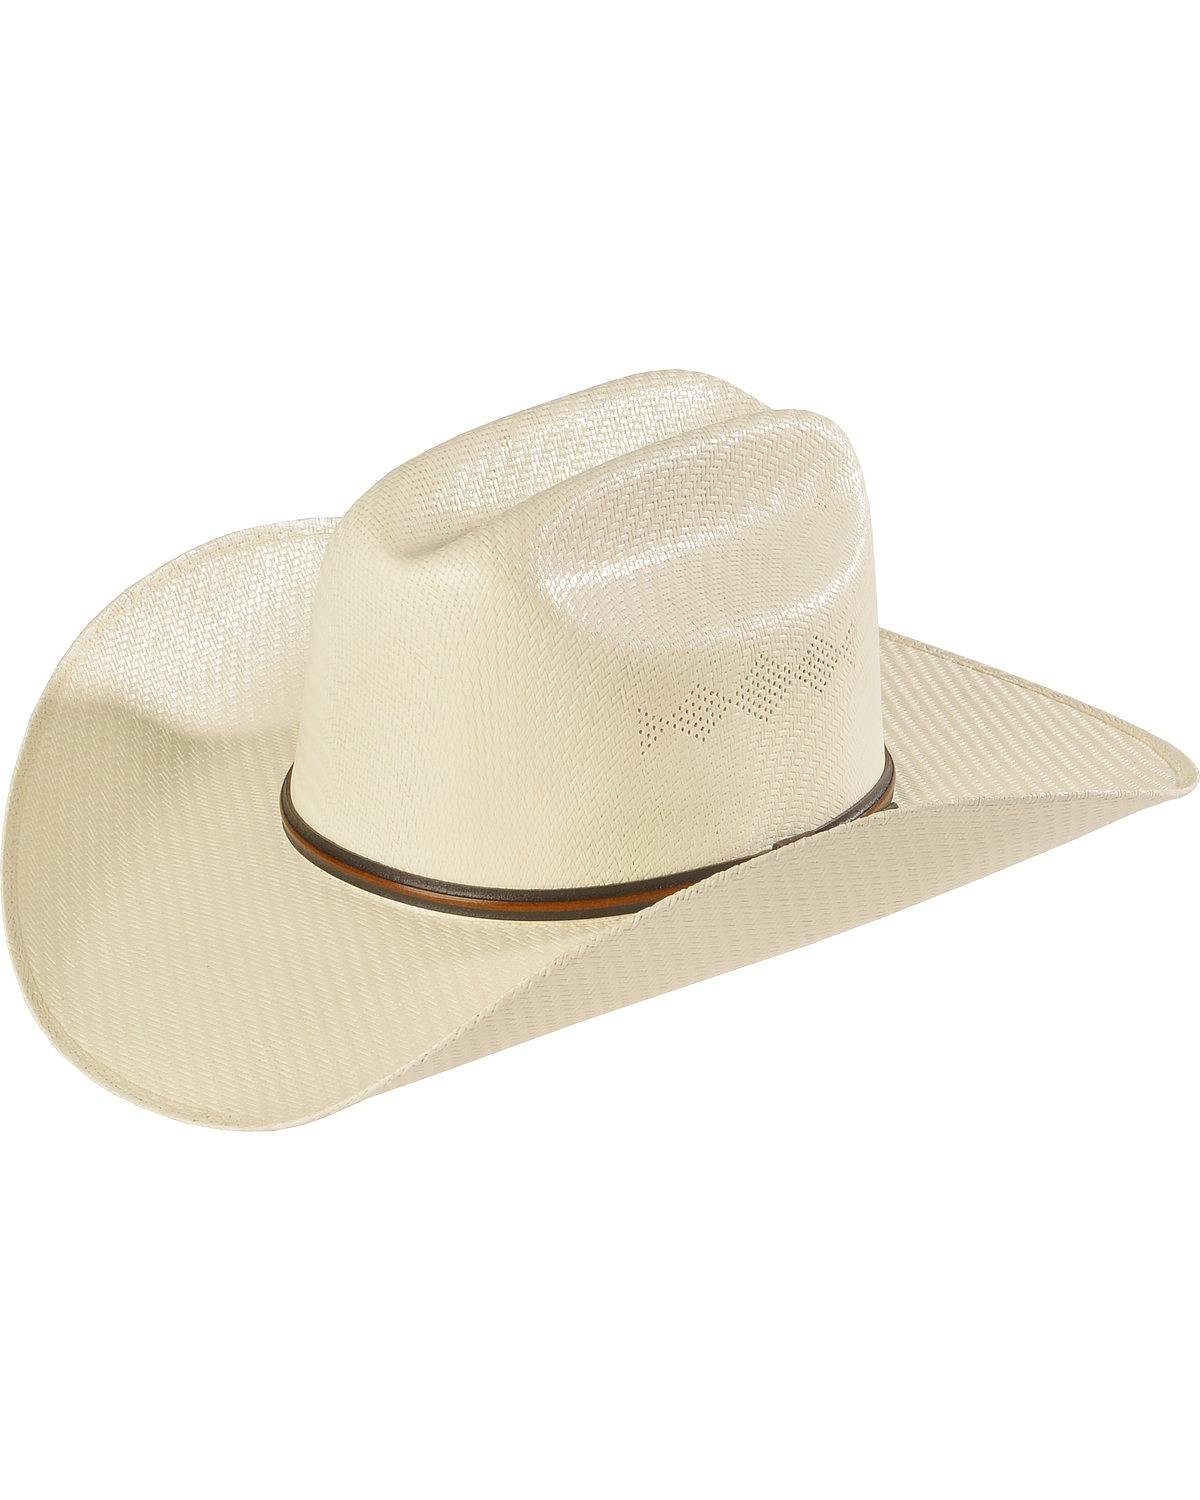 Twister Men's 5X Shantung Double S Straw Cowboy Hat Natural 6 7/8 T71563